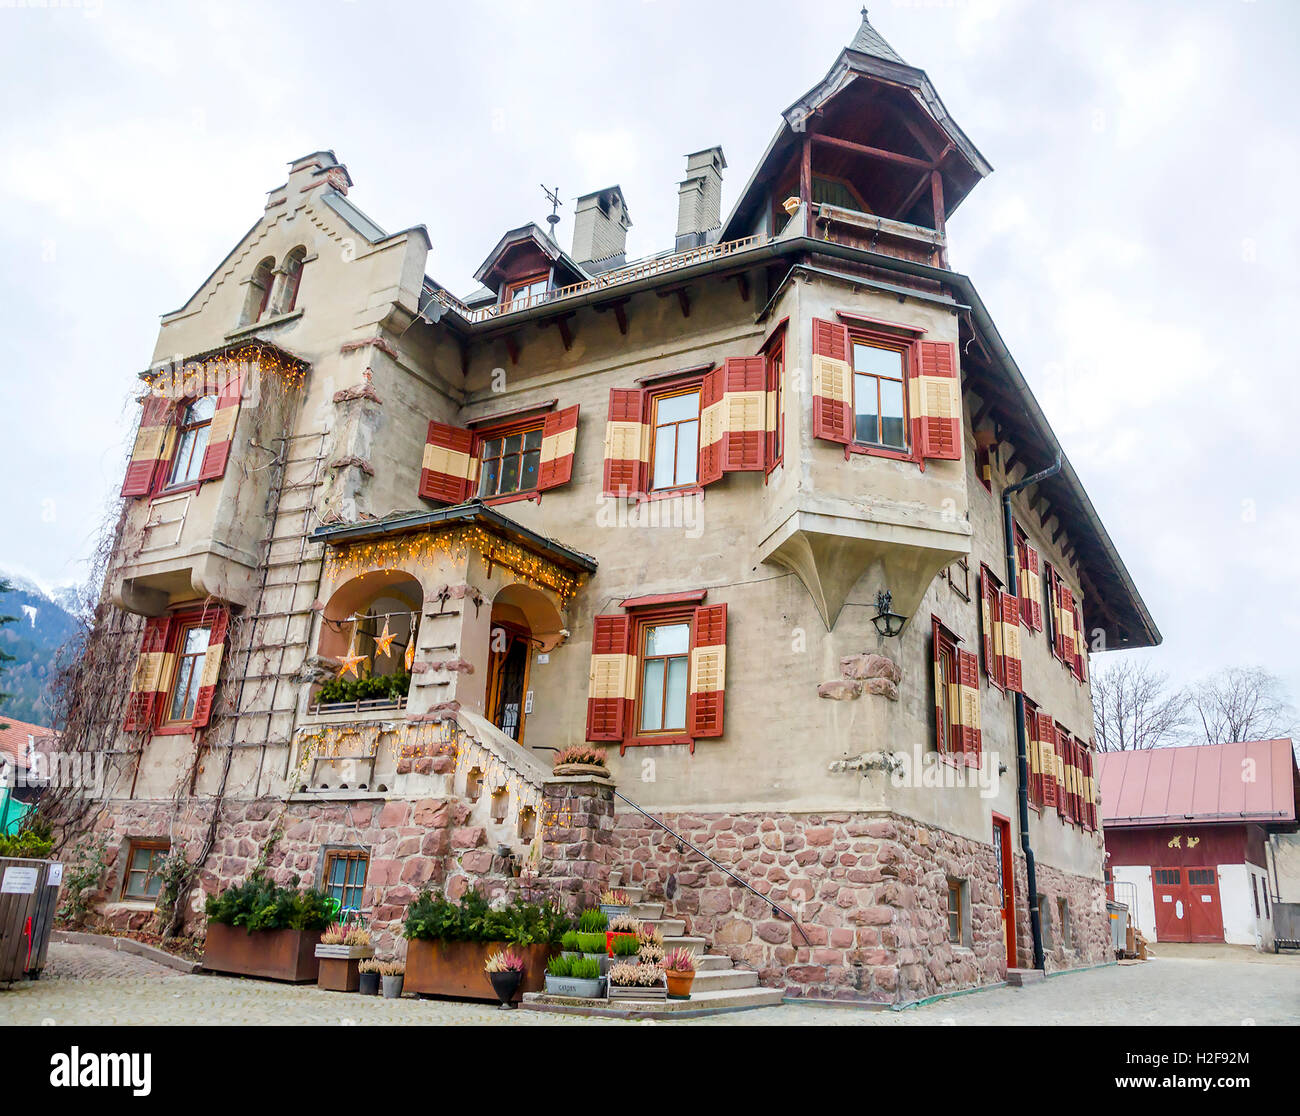 Brunico, Italy, 14 December 2014: a strange and imposing big house with colorful vivid red windows during the christmas - Stock Image